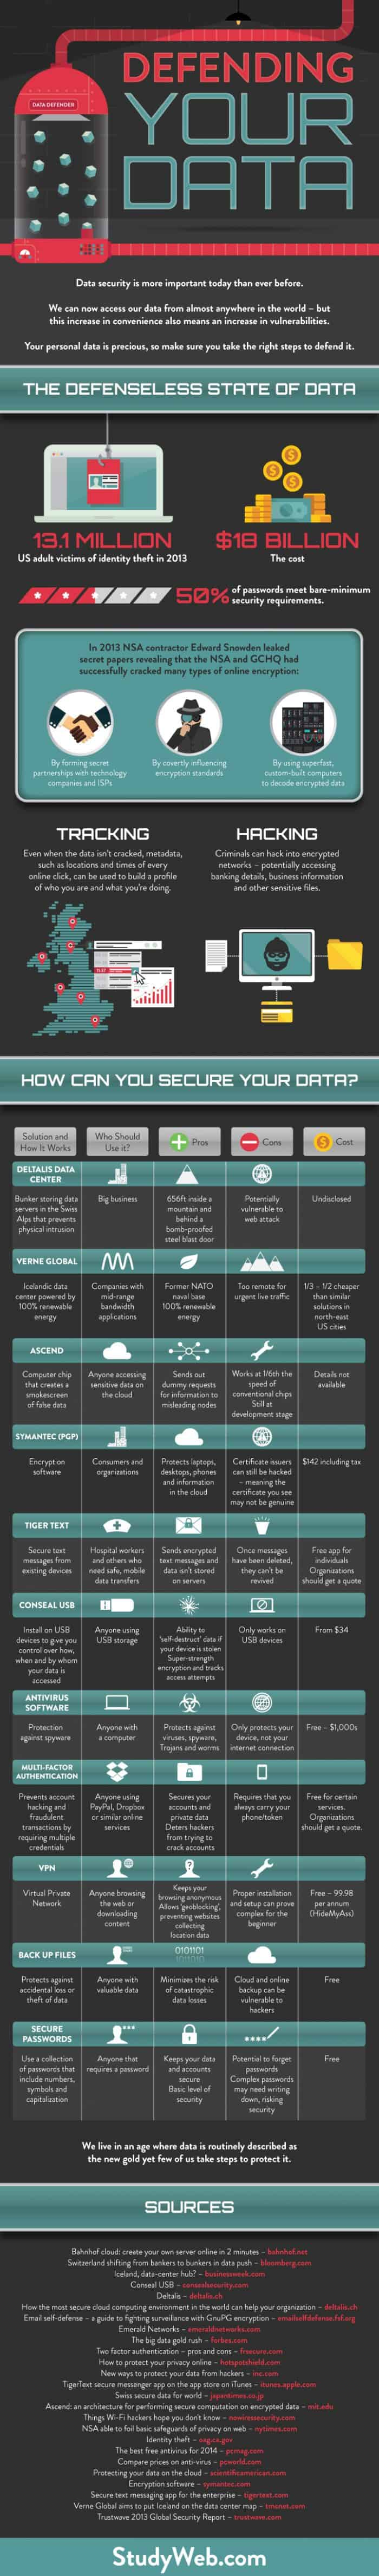 Defending your data infographic